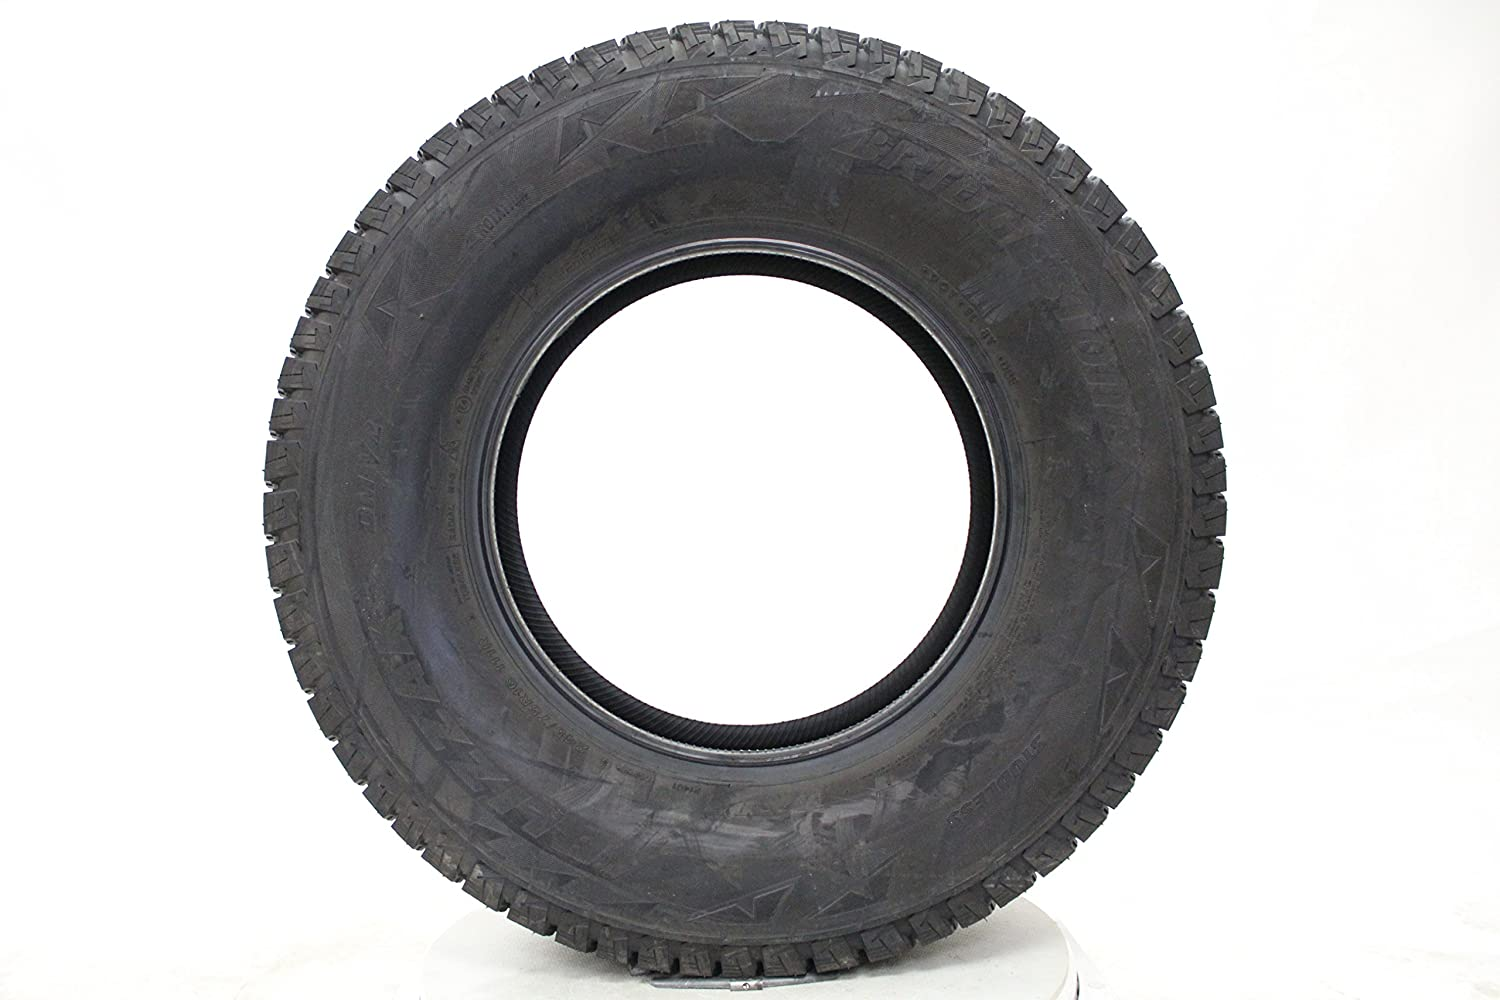 275//60R18 113R Bridgestone BLIZZAK DM-V2 Winter Radial Tire